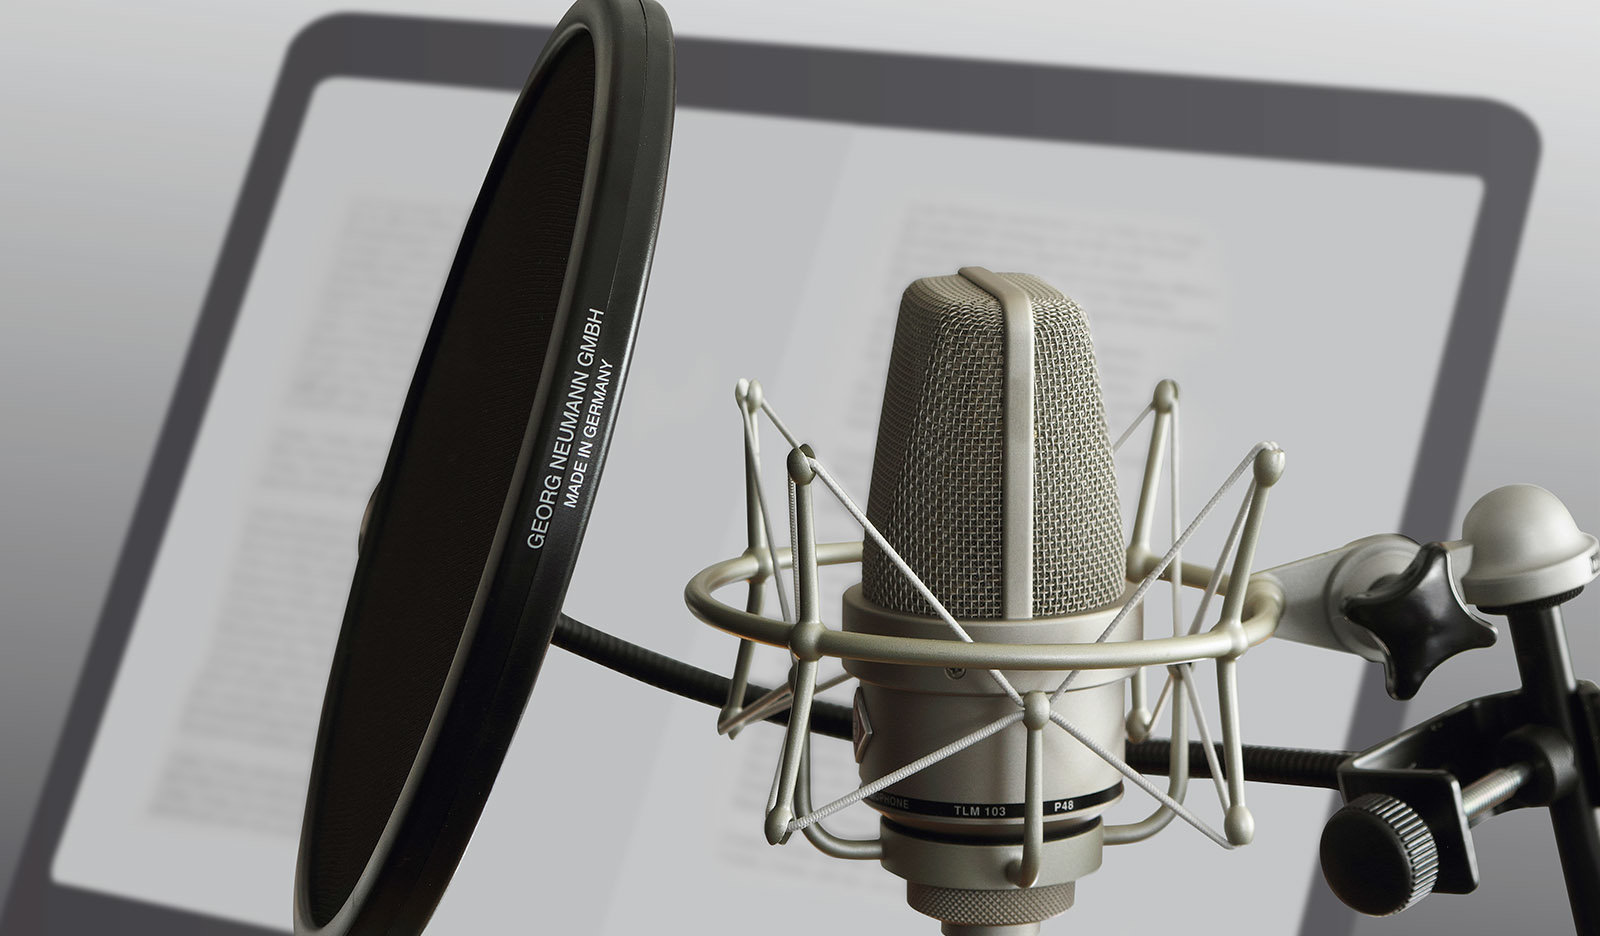 For optimal protection, the pop screen shouldn't be too close to the mic